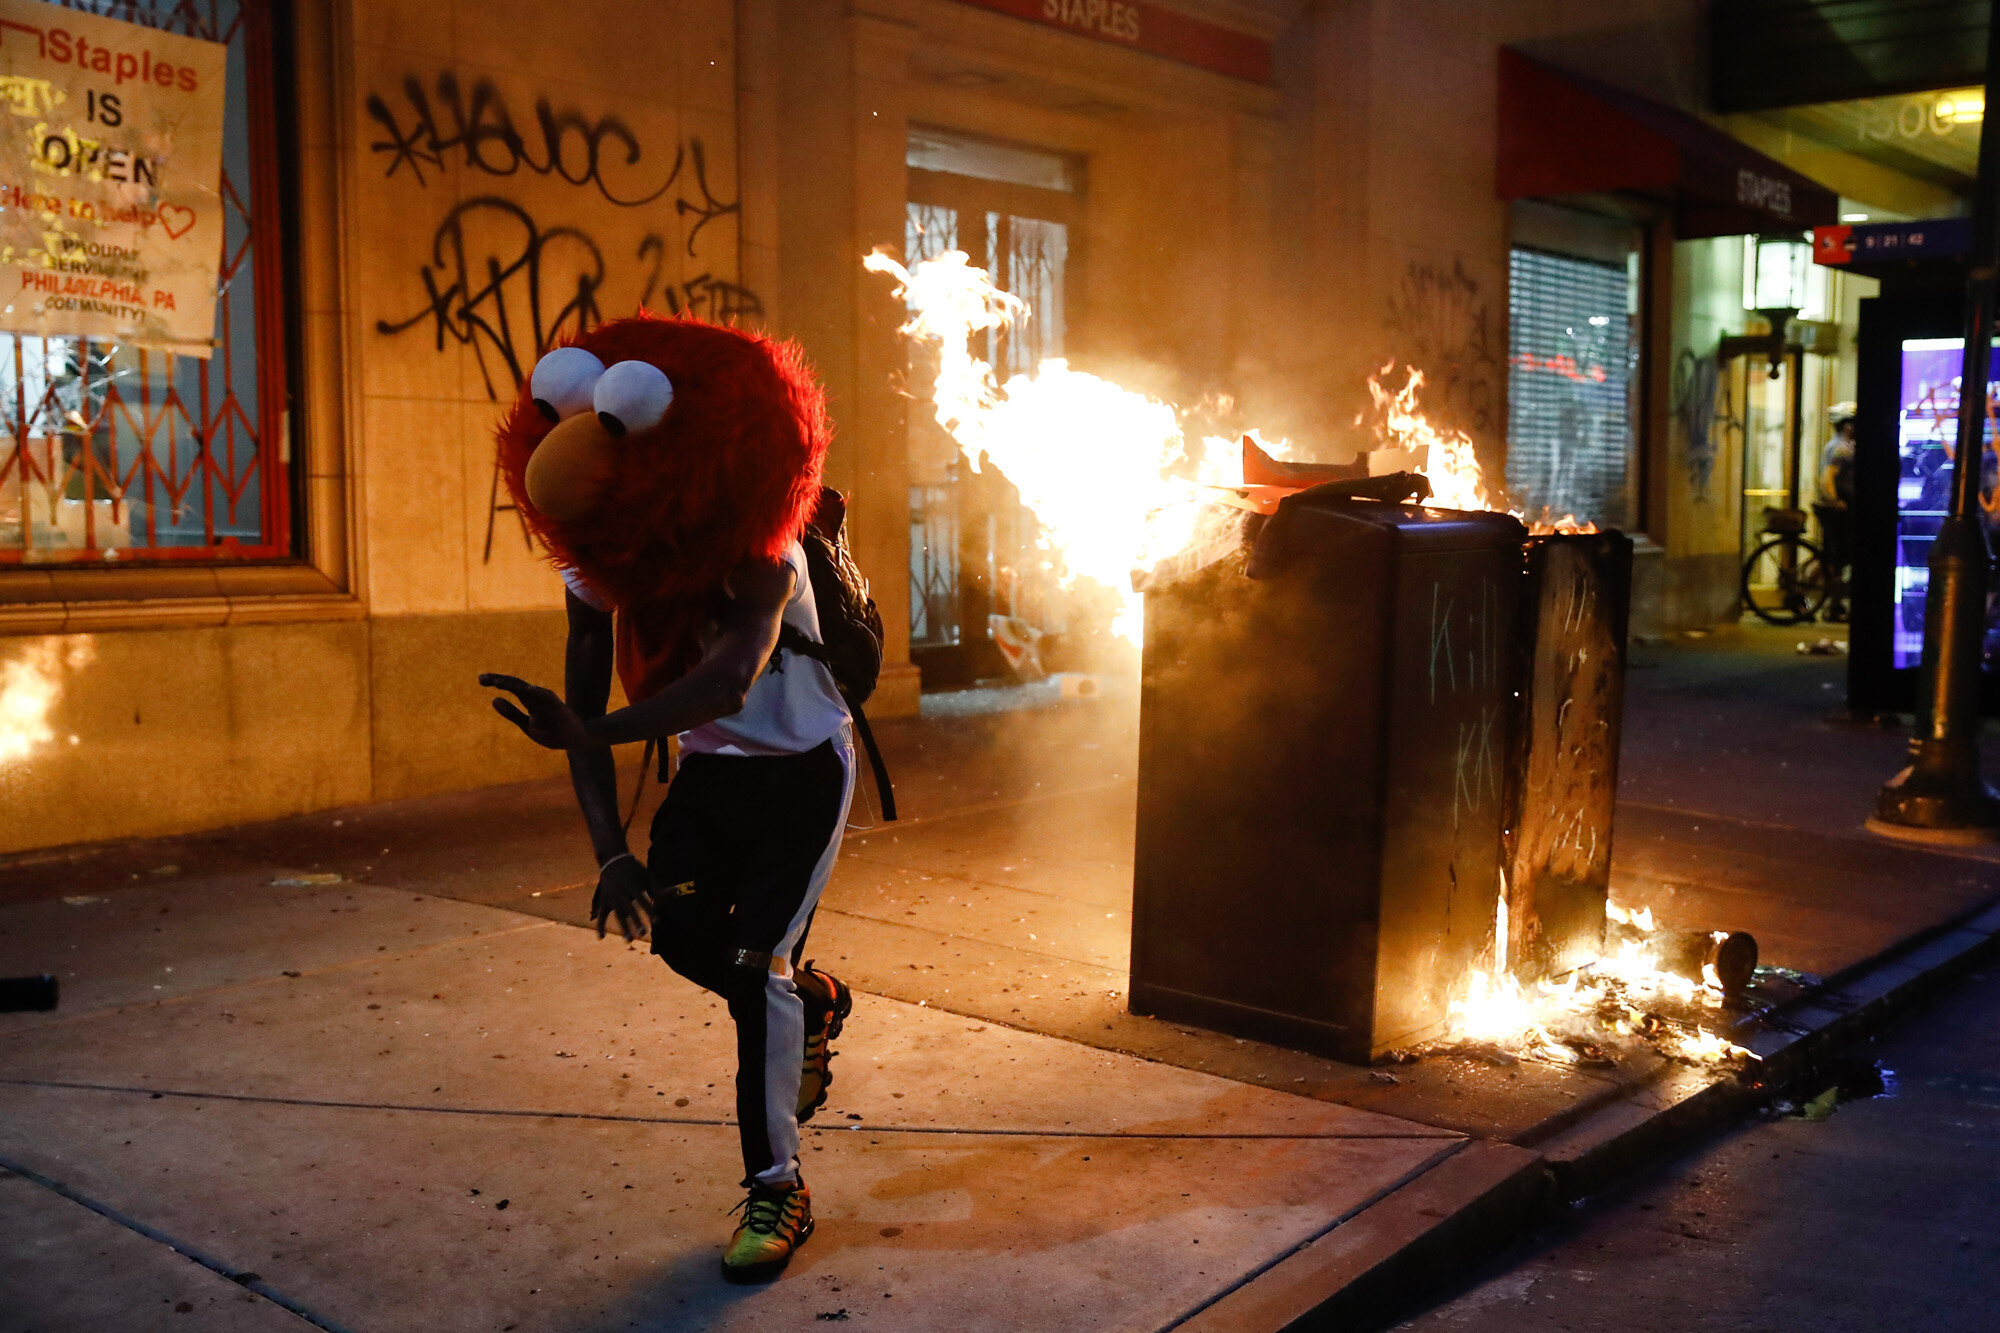 A protester in an Elmo mask dances as a street fire burns on May 30, 2020, during a protest in Philadelphia over the death of George Floyd, a Black man who was killed while in police custody in Minneapolis on May 25. (AP Photo/Matt Rourke)